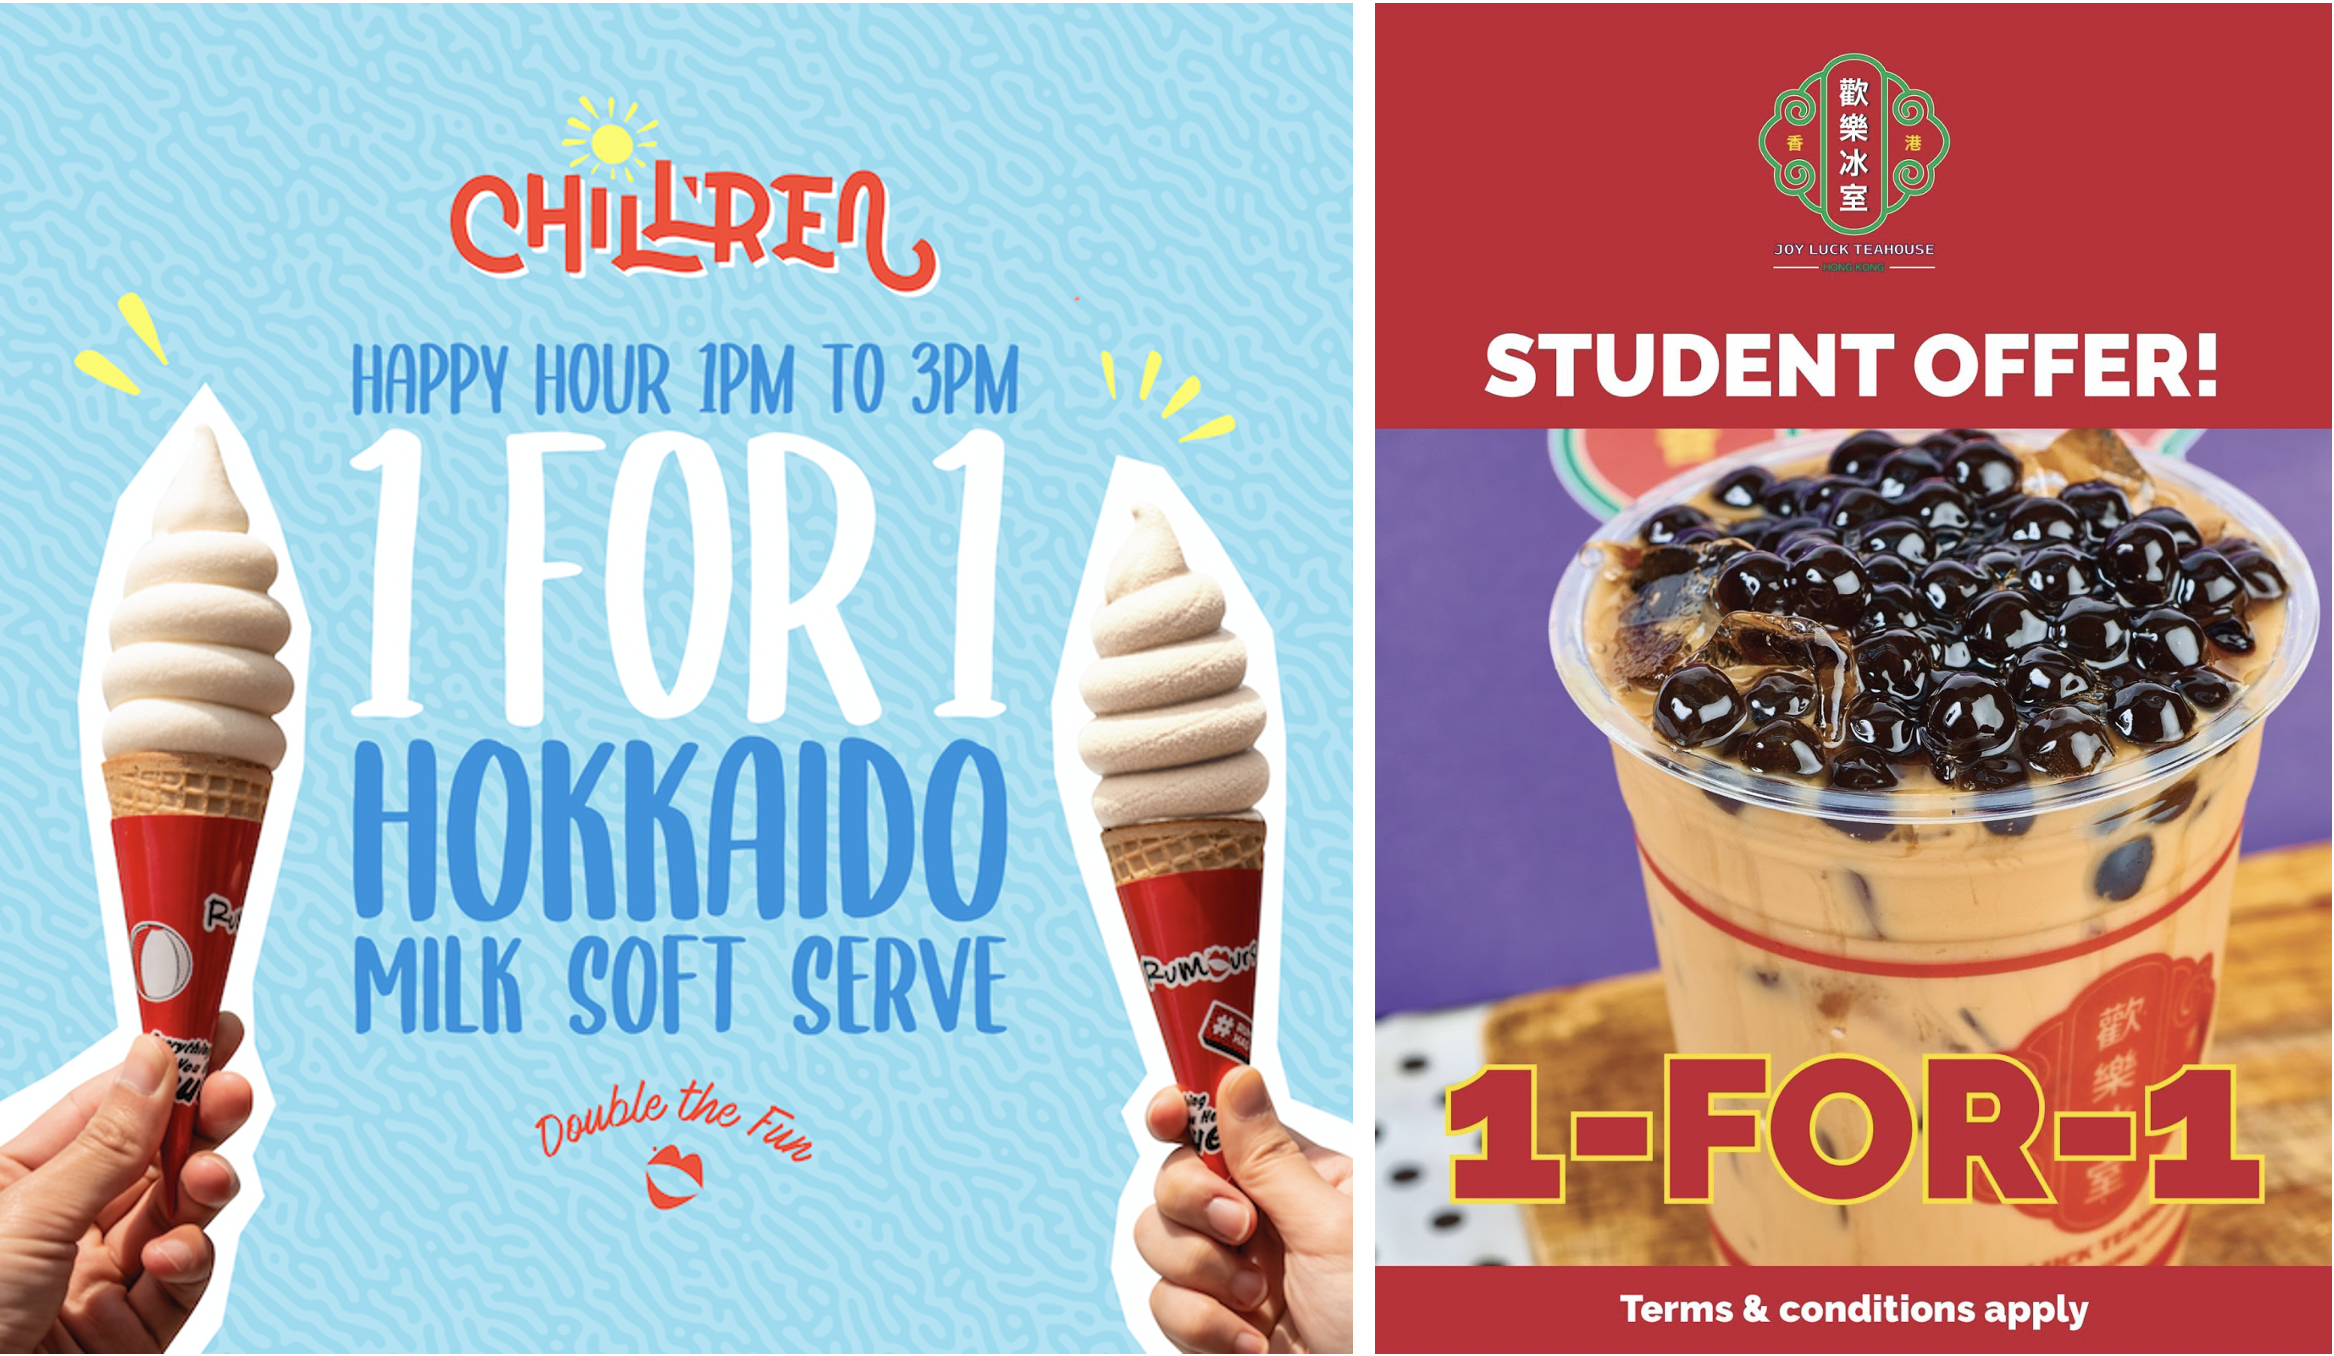 Top 12 School Holiday Promotions - FREE Waffles, 1-for-1 BBT & Hokkaido Milk Soft Serve, 50% OFF Pastas & Burgers!